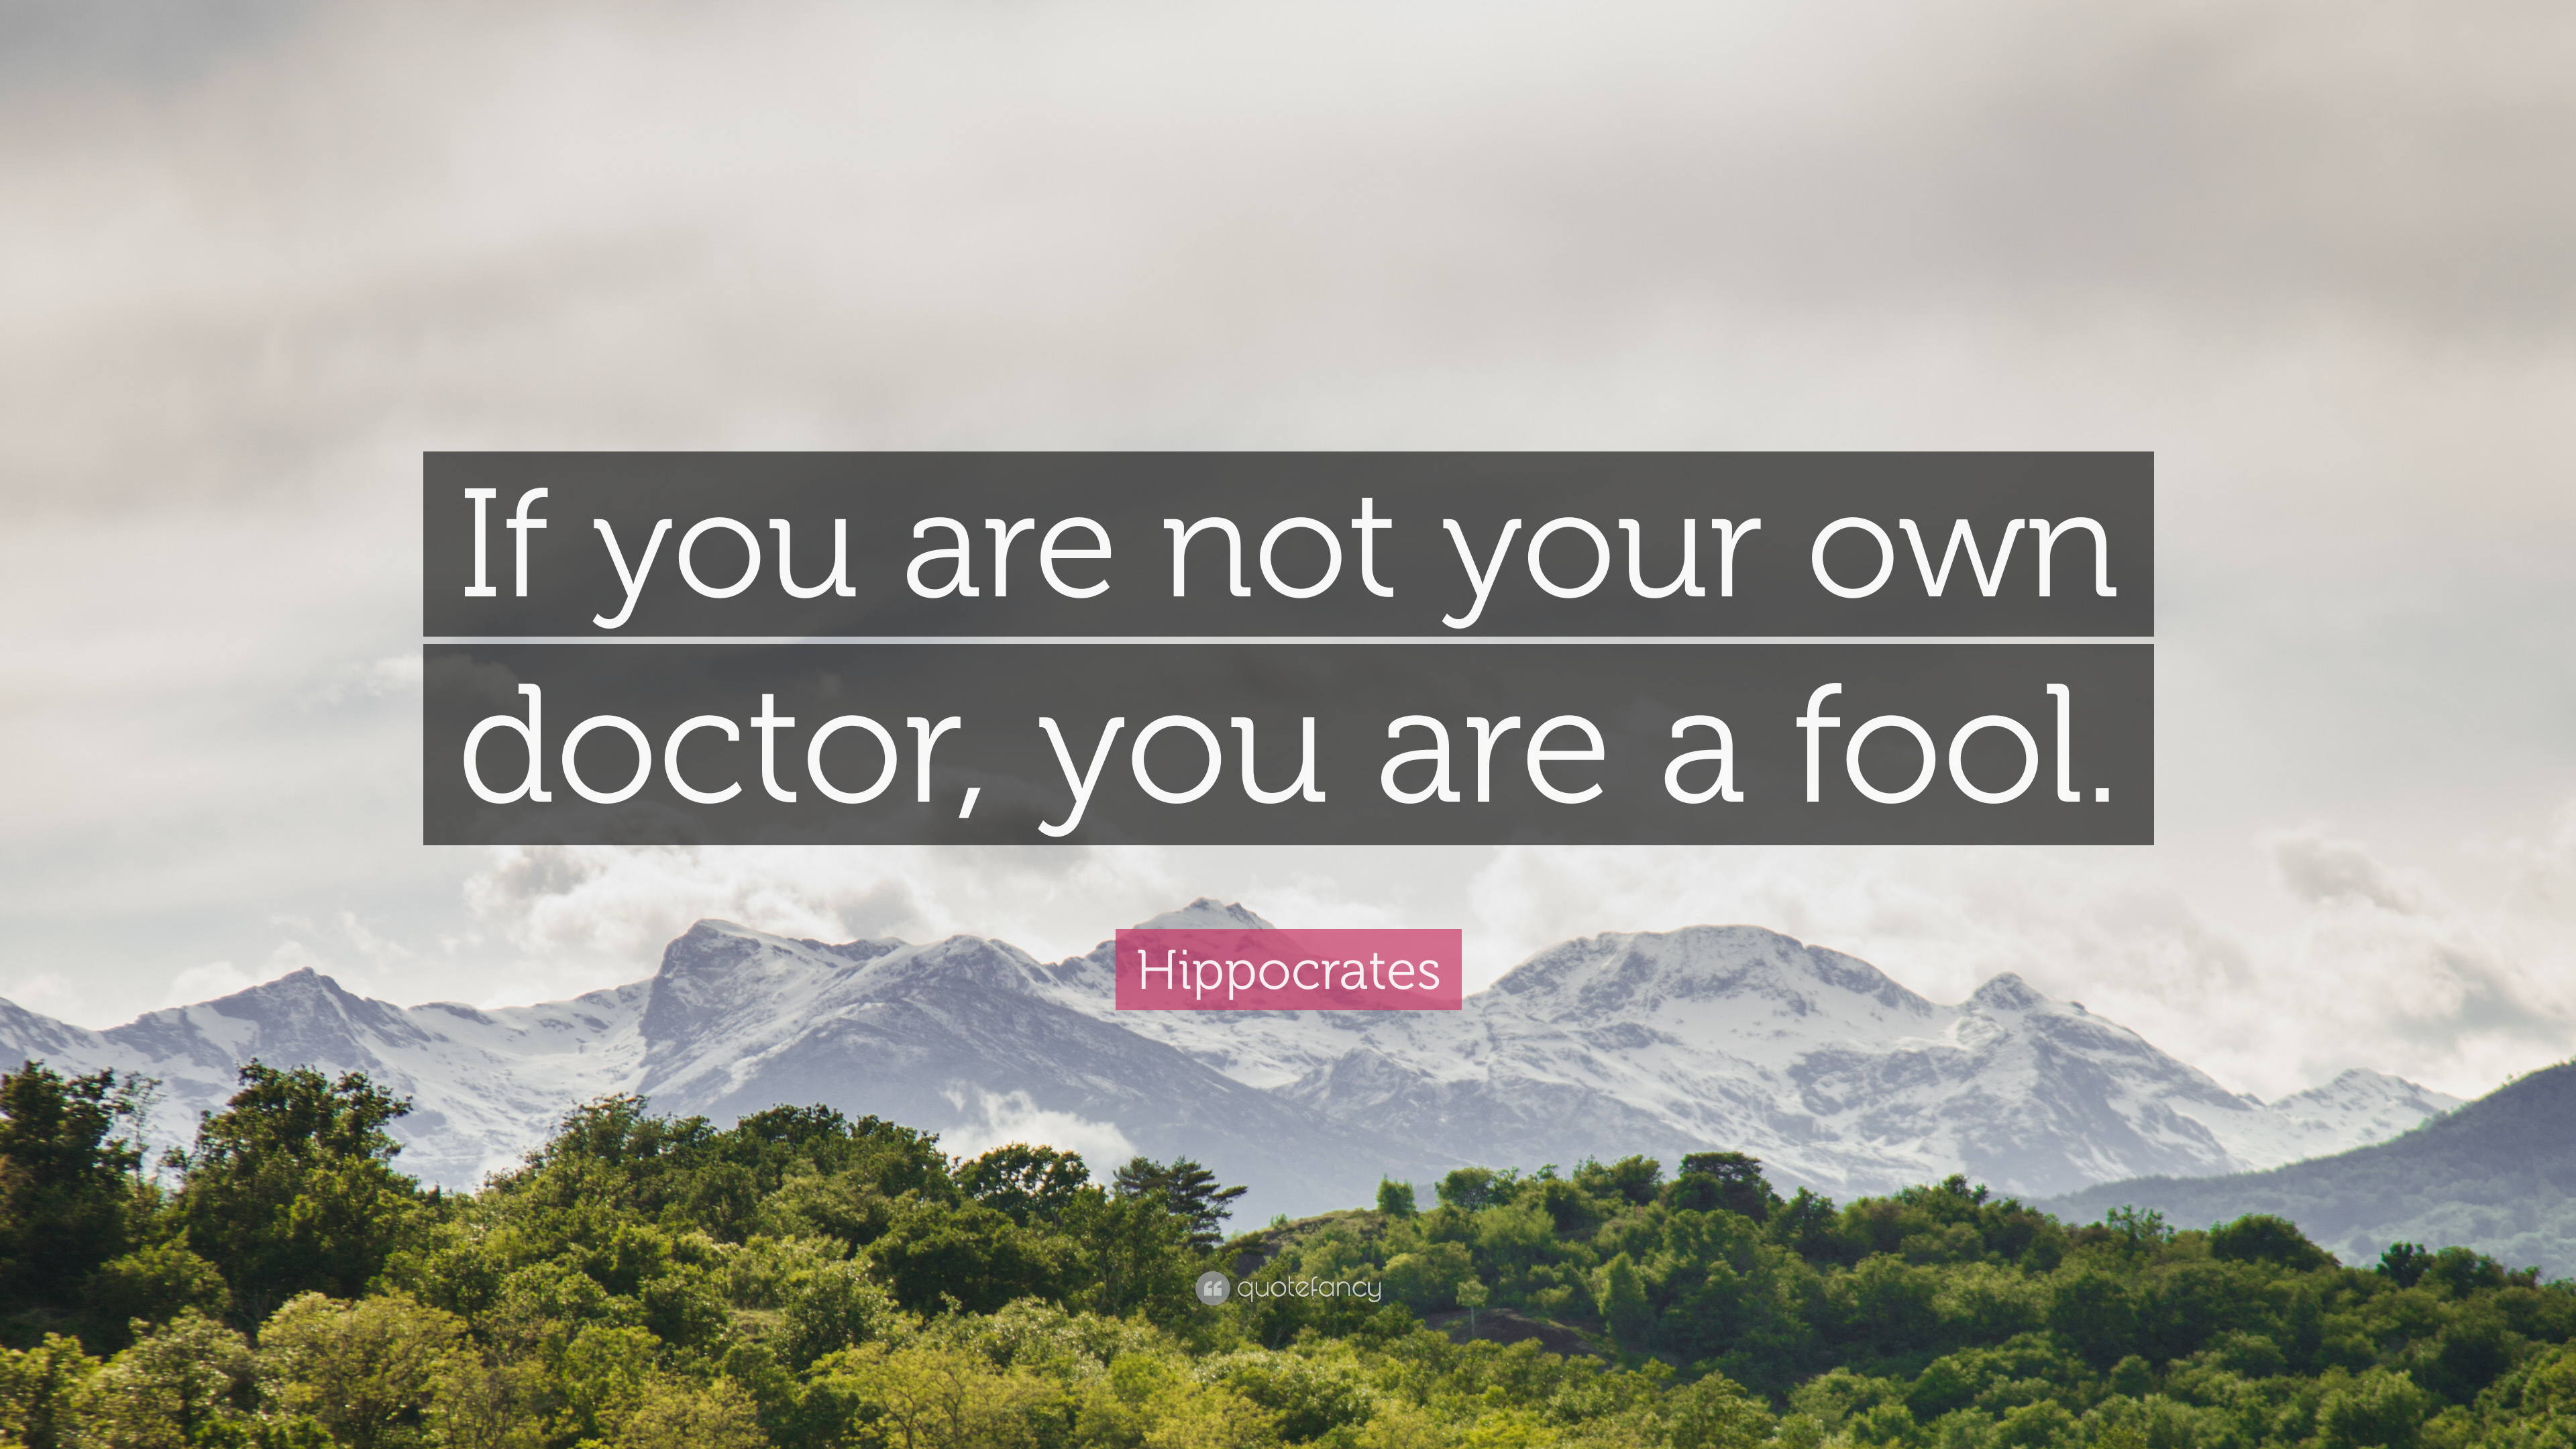 korona - Page 22 2232755-Hippocrates-Quote-If-you-are-not-your-own-doctor-you-are-a-fool